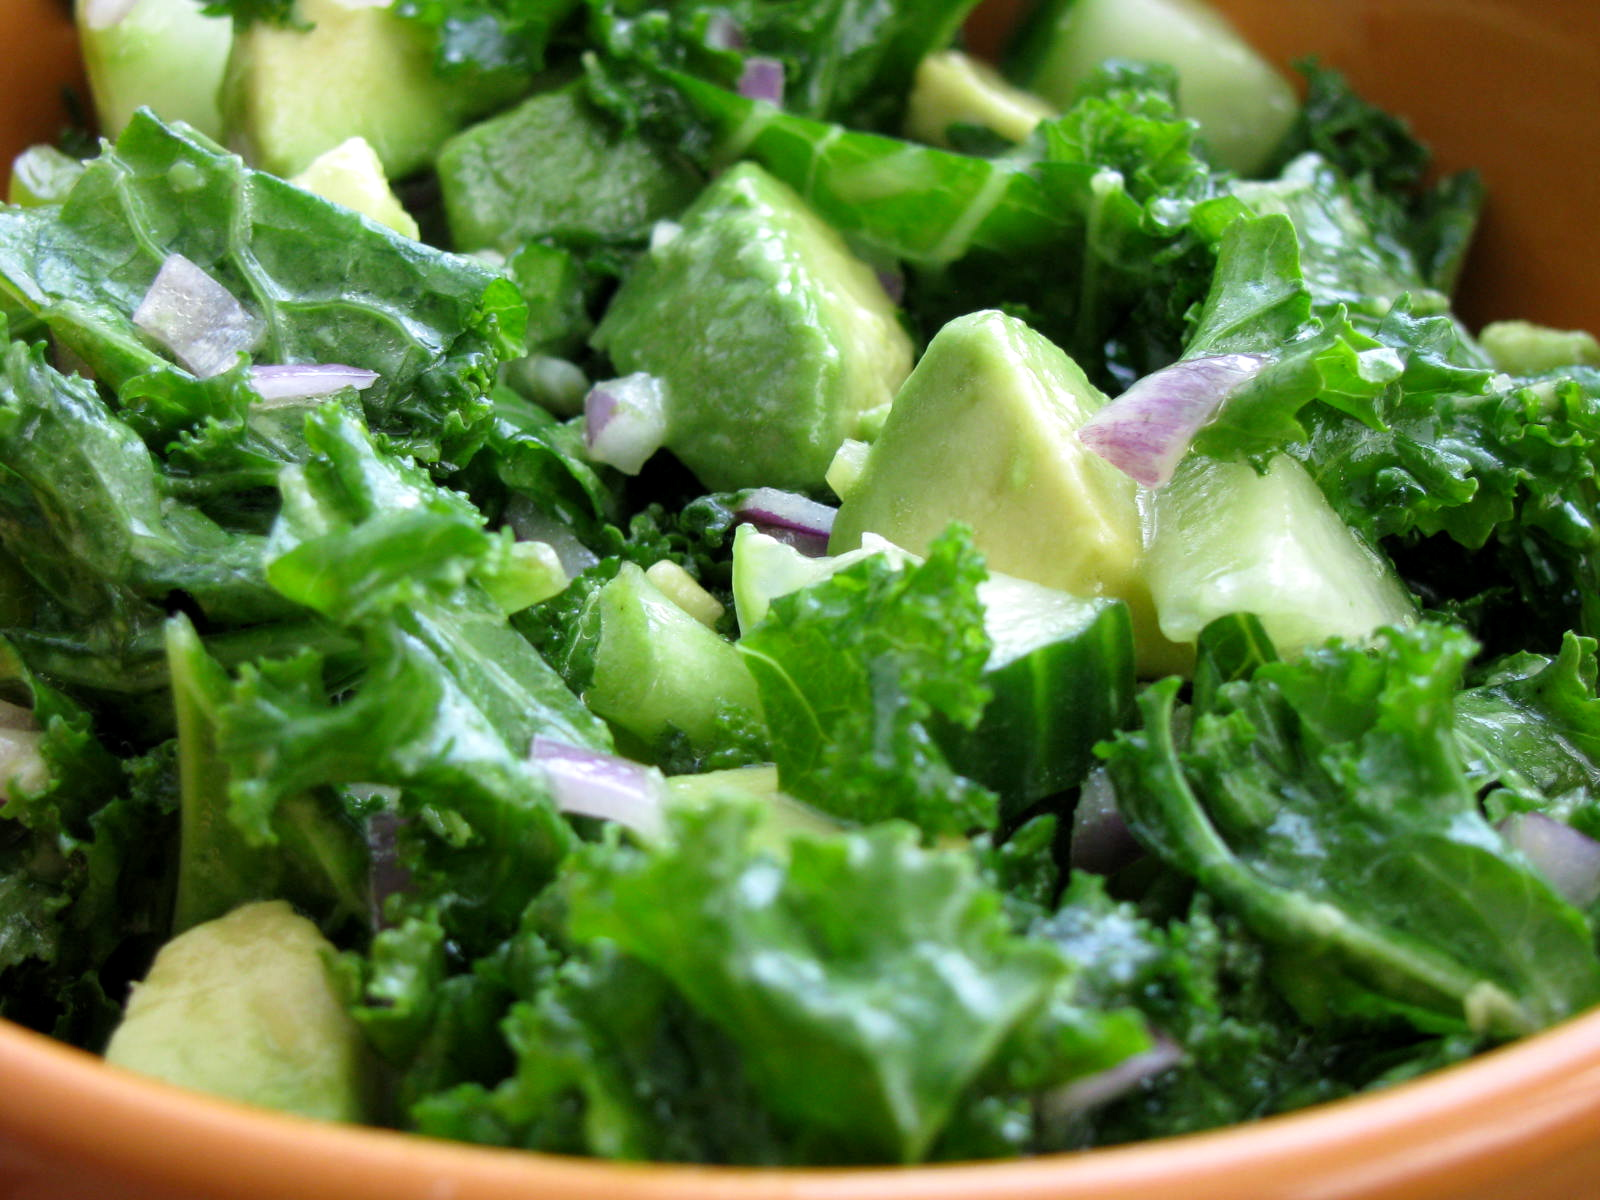 Kale recipes recipes wiki fandom powered by wikia kale recipes forumfinder Gallery